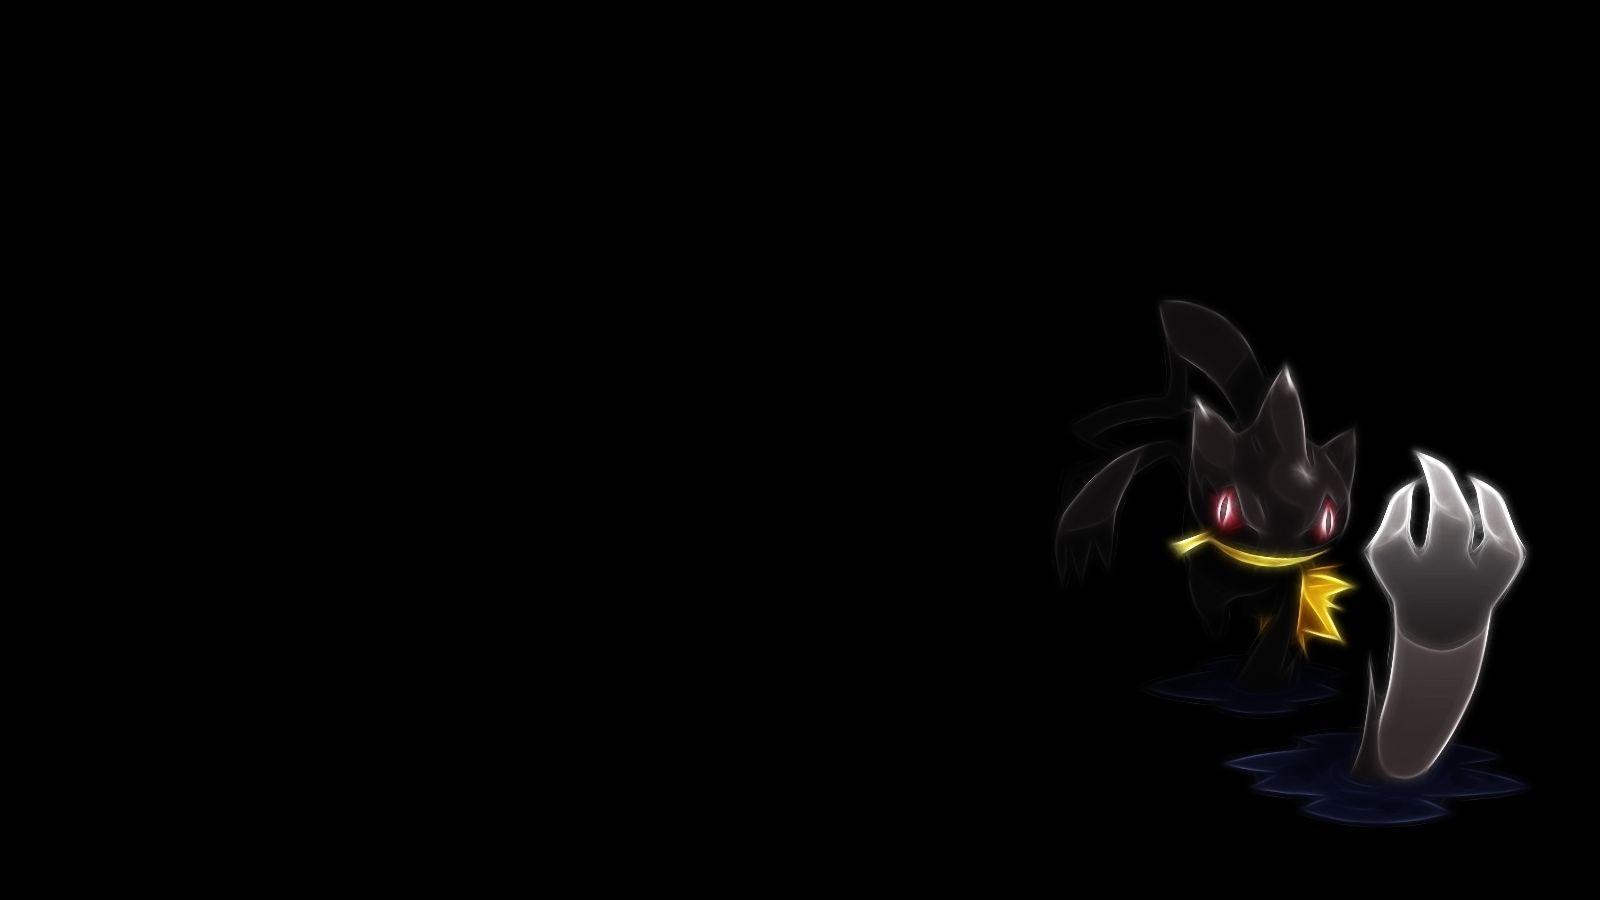 Download Wallpapers, Download pokemon fractalius black background ...